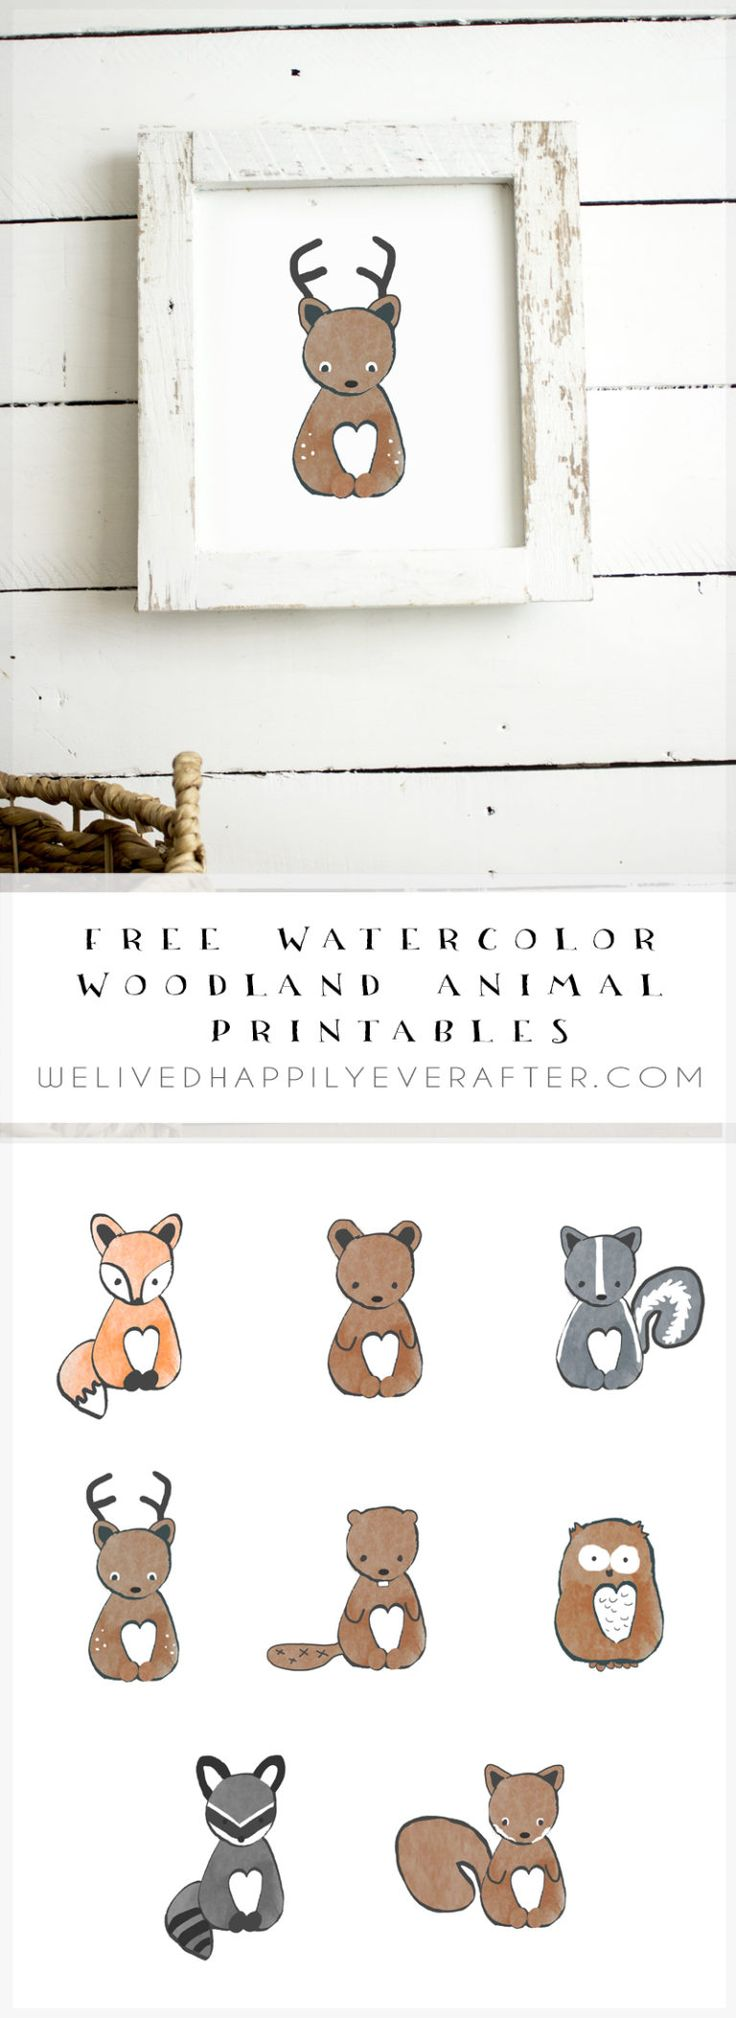 Free Watercolor Forest Woodland Animal Nursery Prints